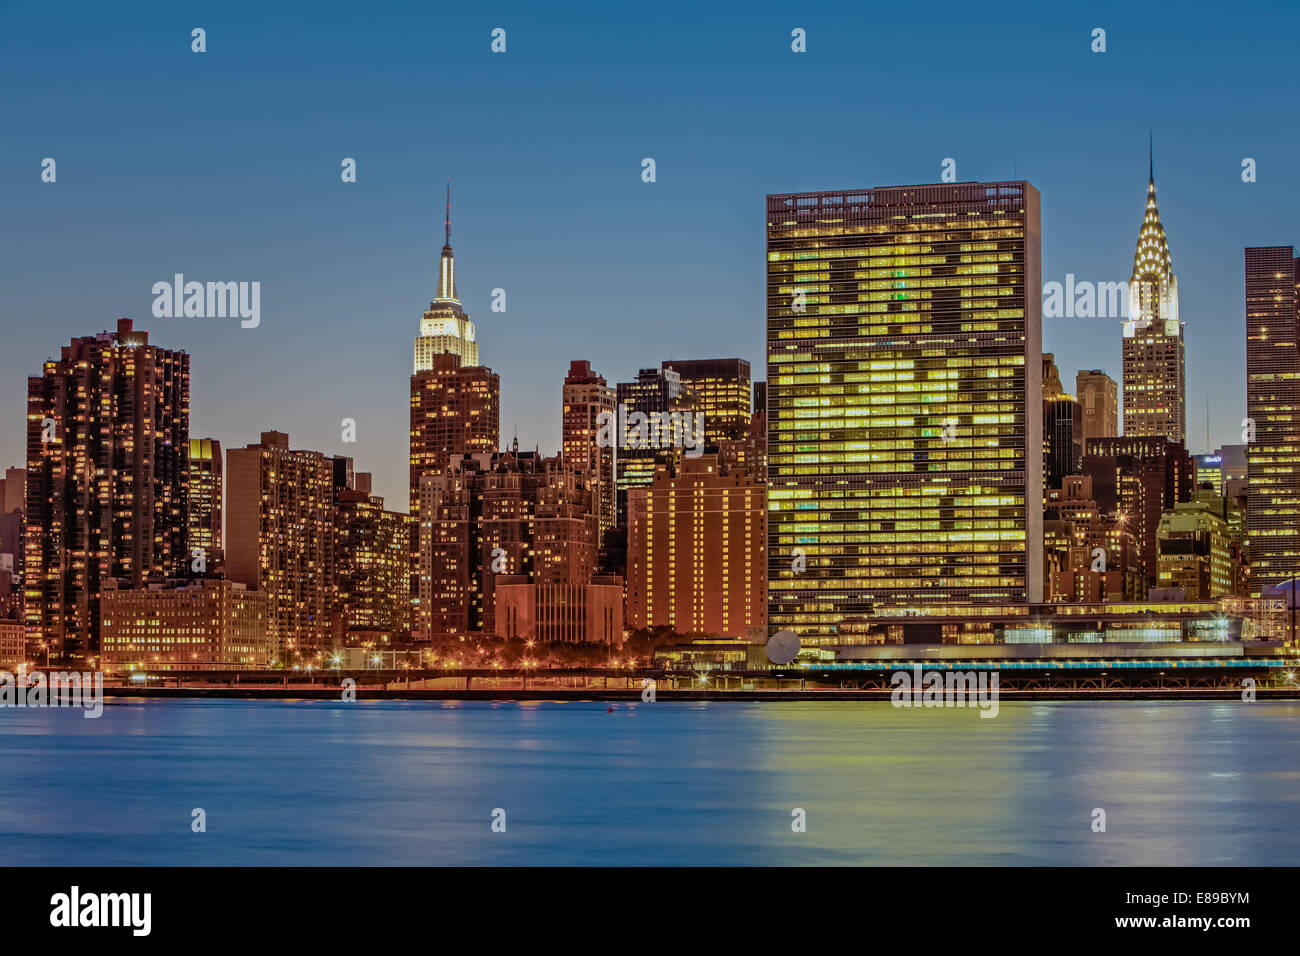 New York City Landmarks - Midtown Manhattan New York City skyline view of the Empire State Building, The United - Stock Image